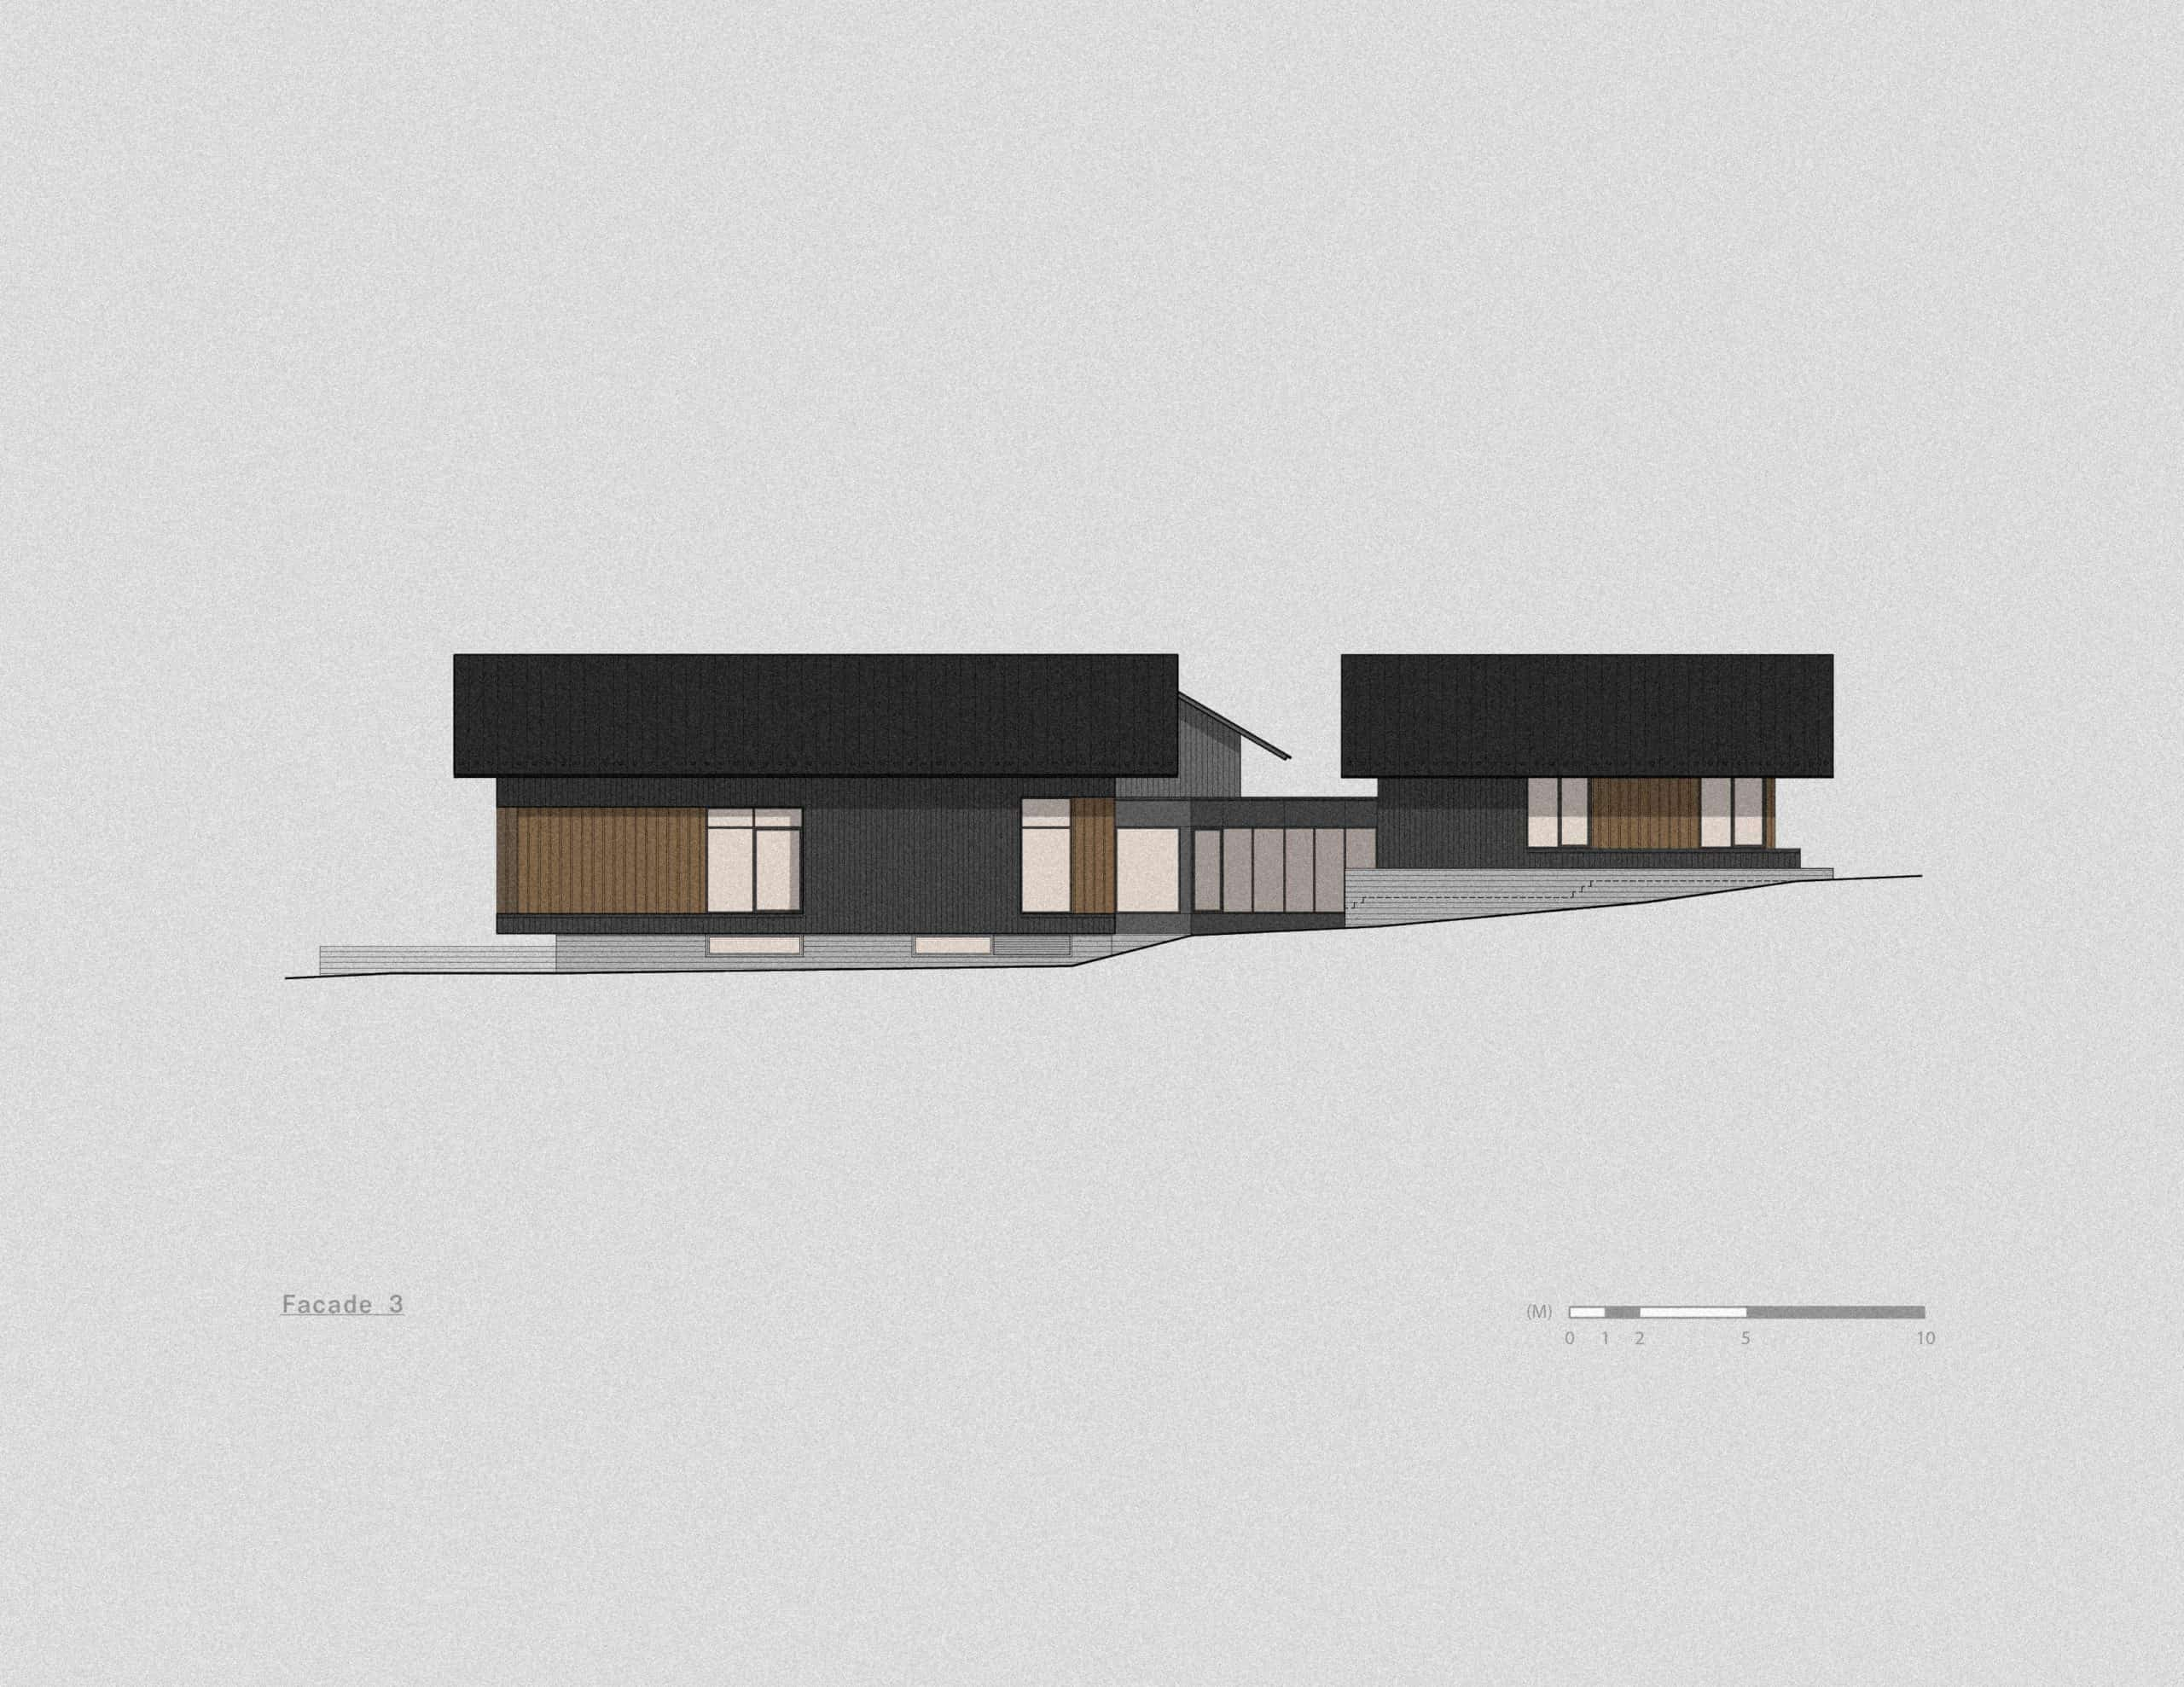 This is an illustrated look at the side elevation of the house.